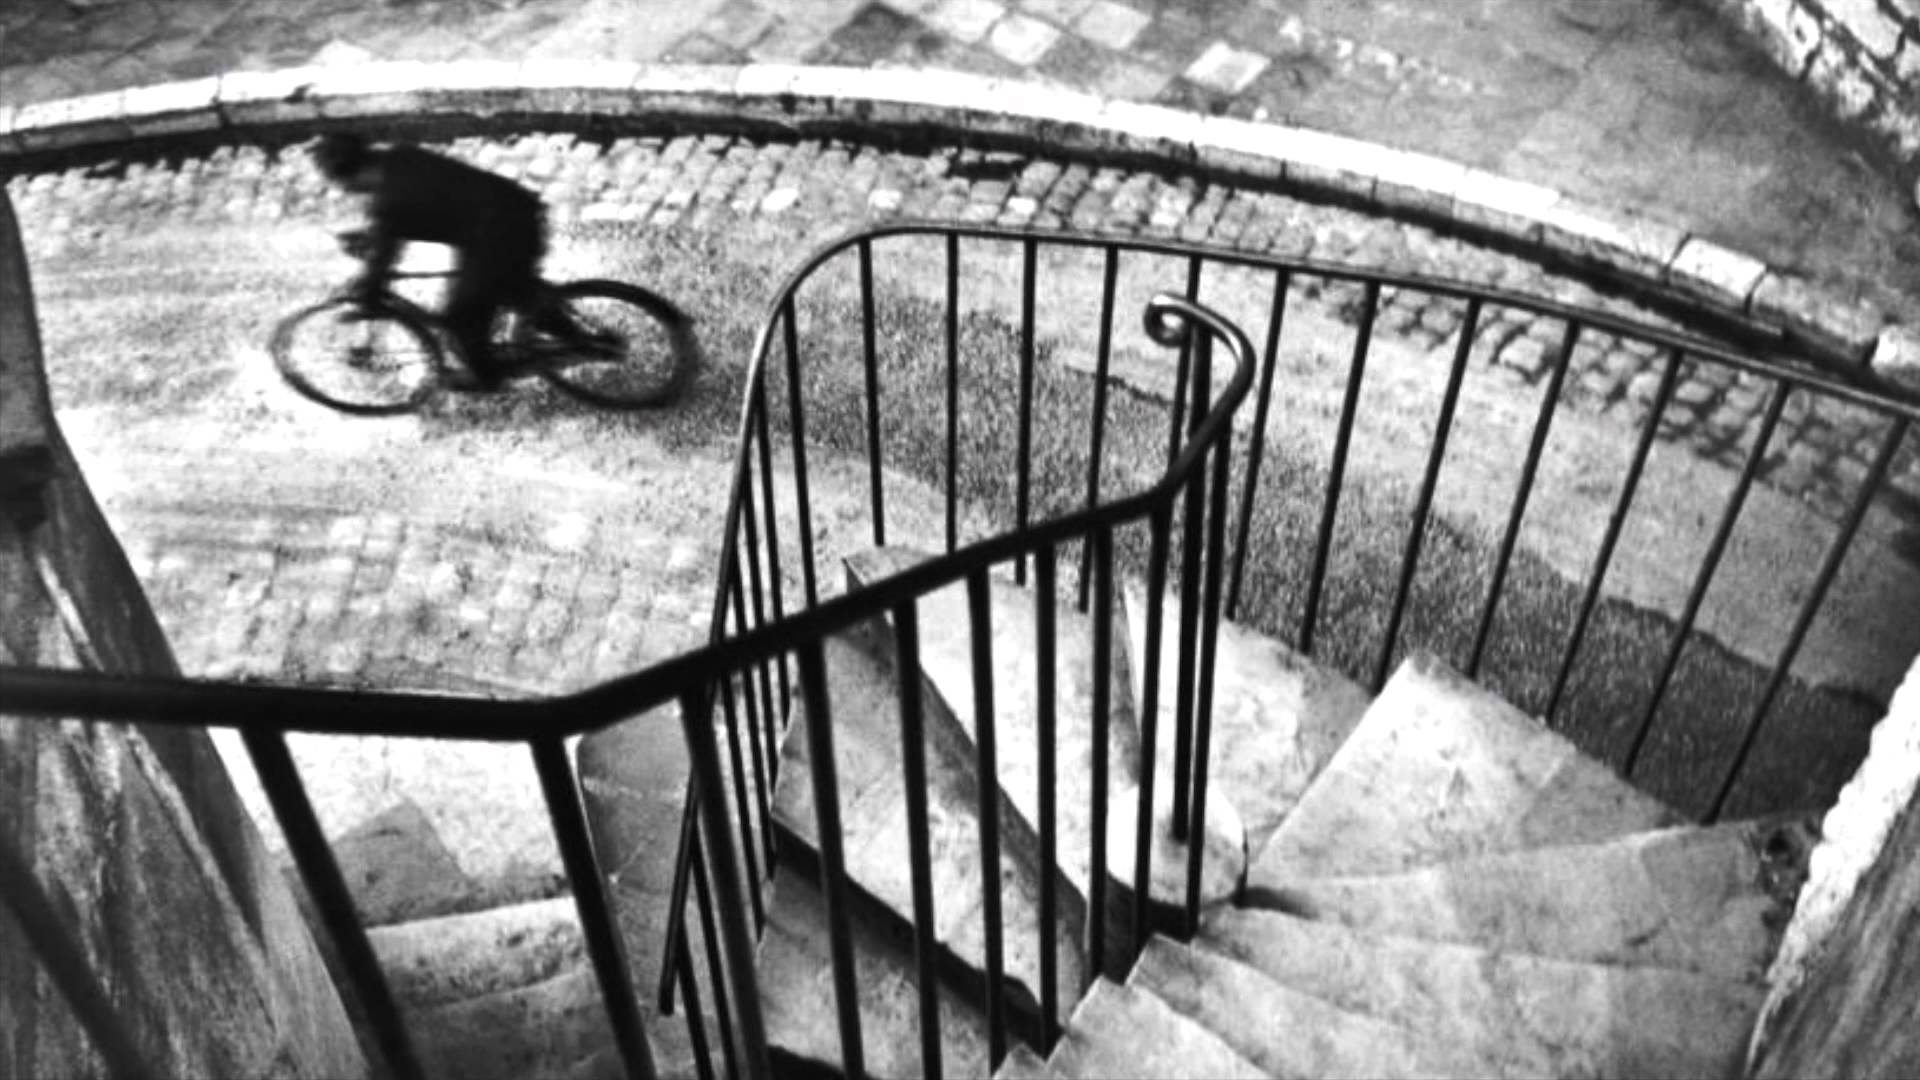 Henri Cartier Bresson Nik Andrews HND Photography Course 1920x1080